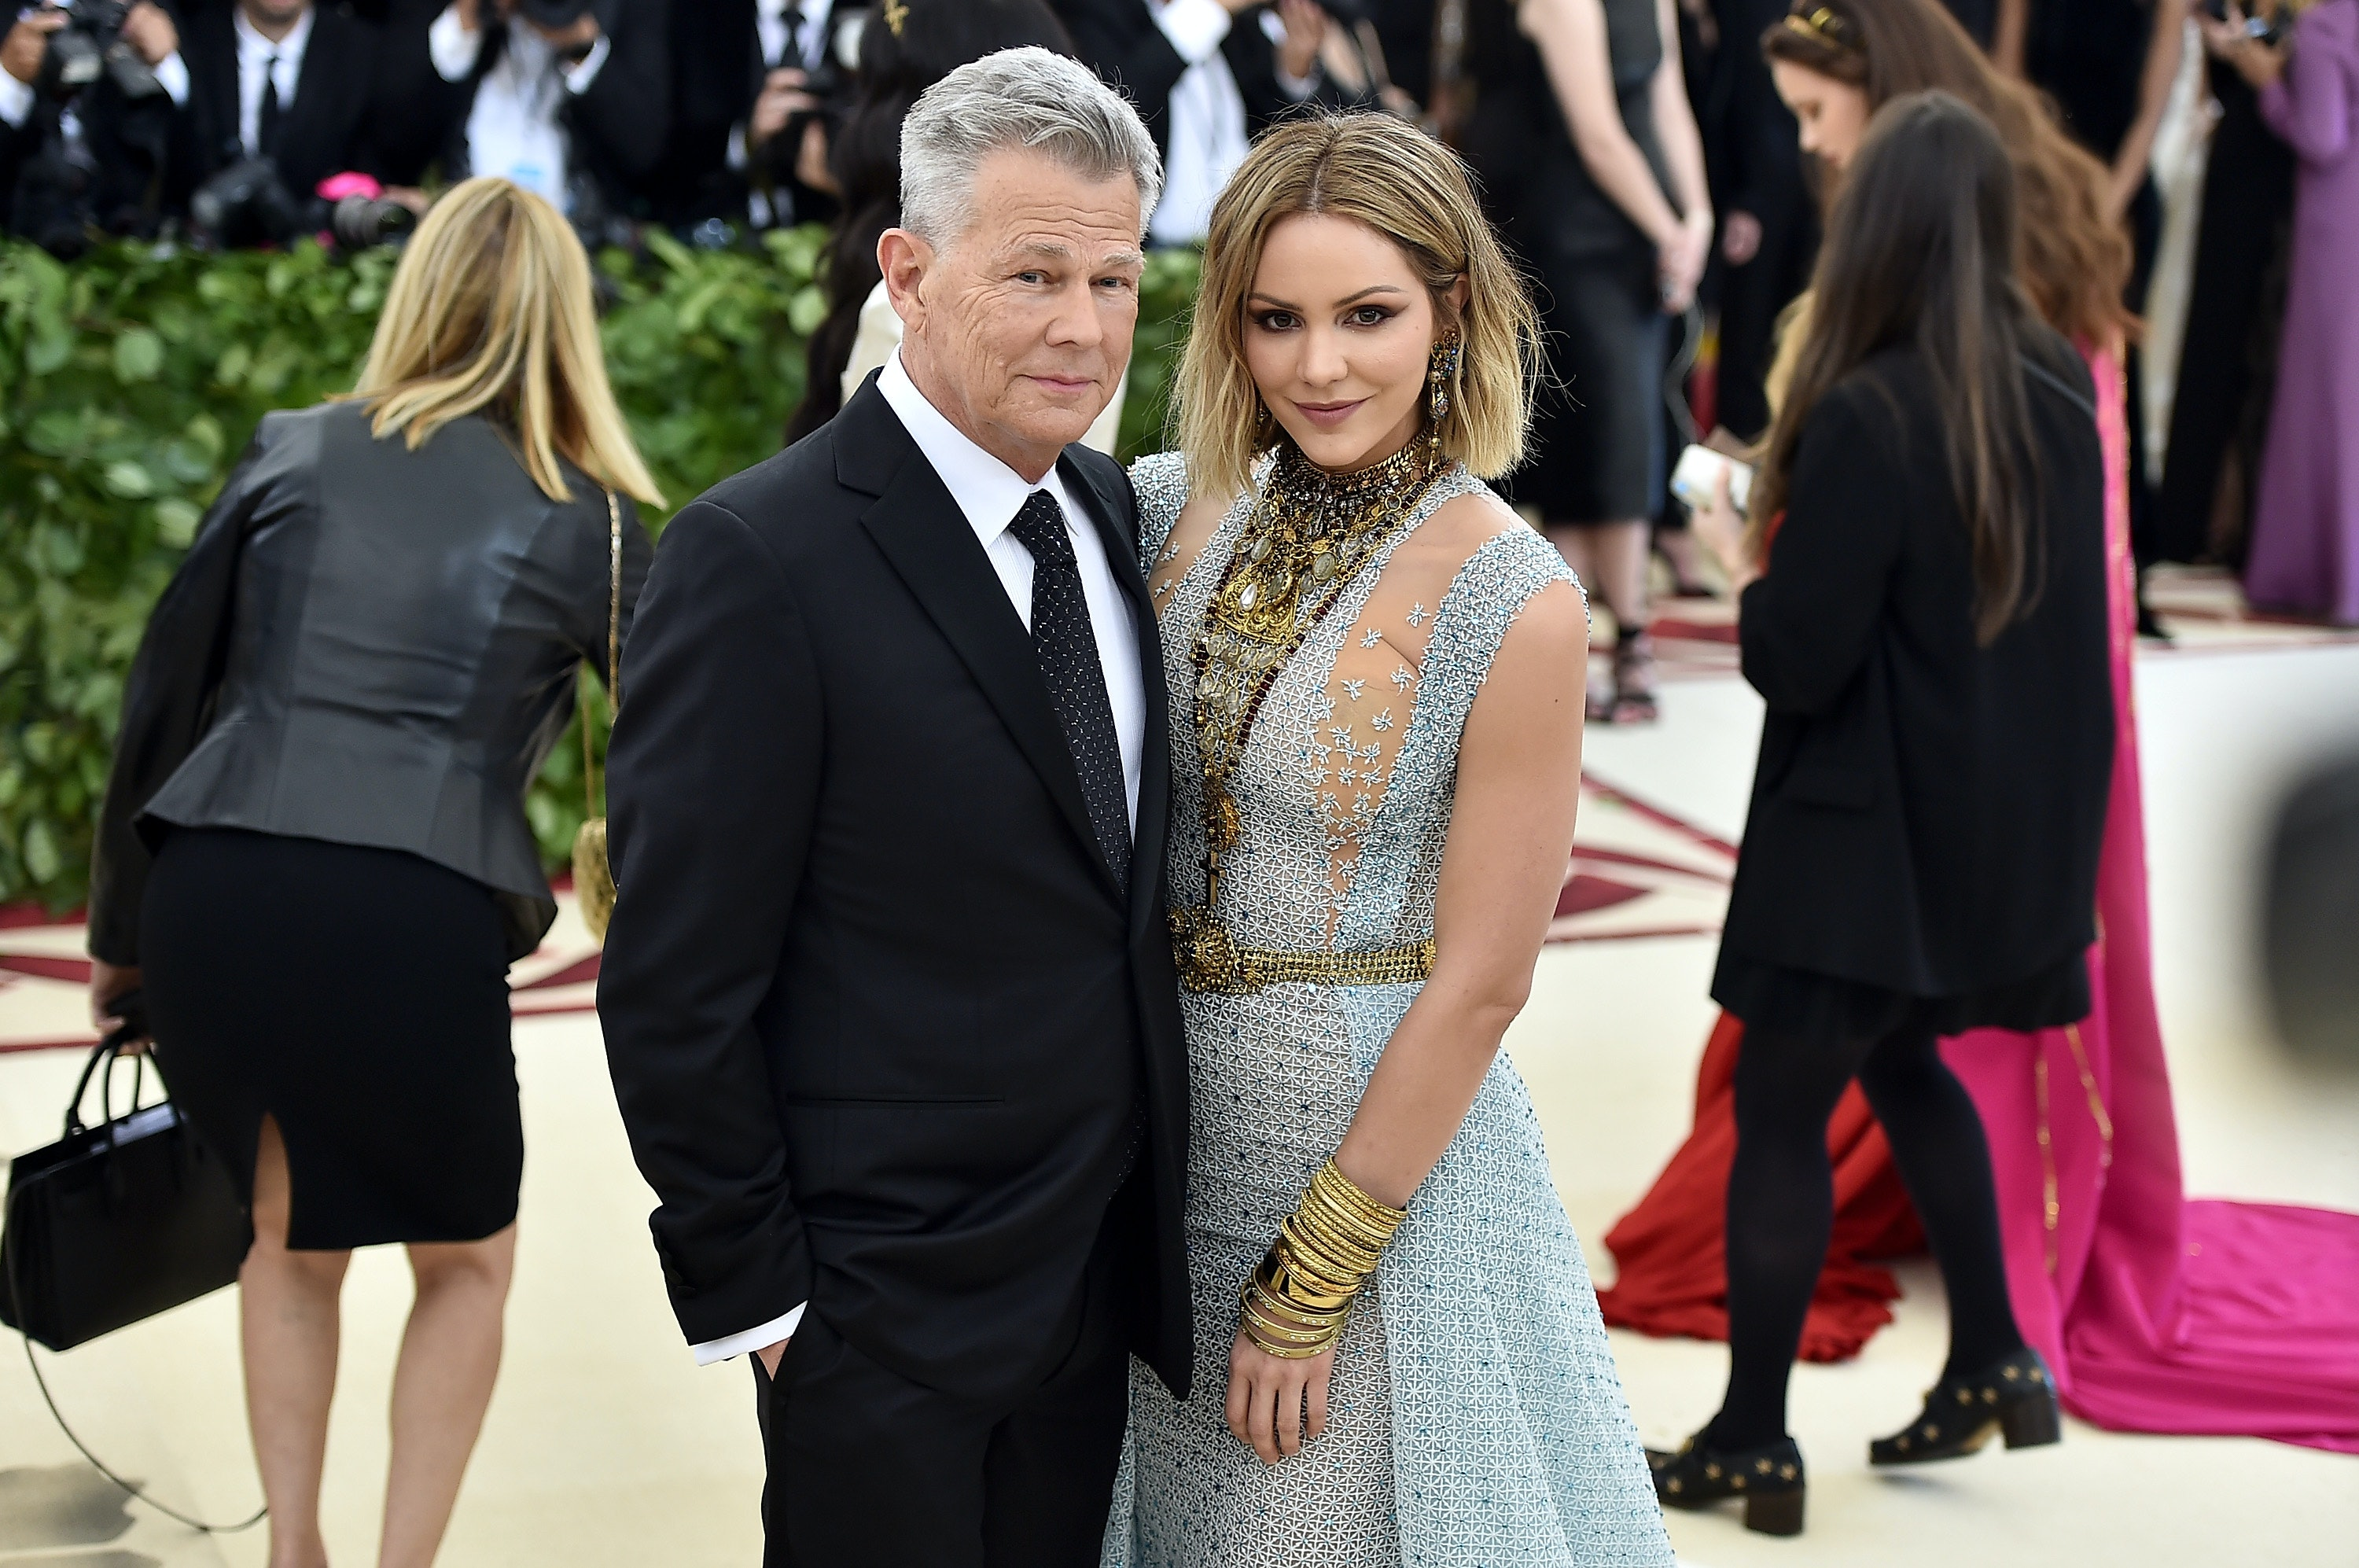 Katharine Mcphee David Foster S Relationship Comments Focus On Happiness Not The Haters